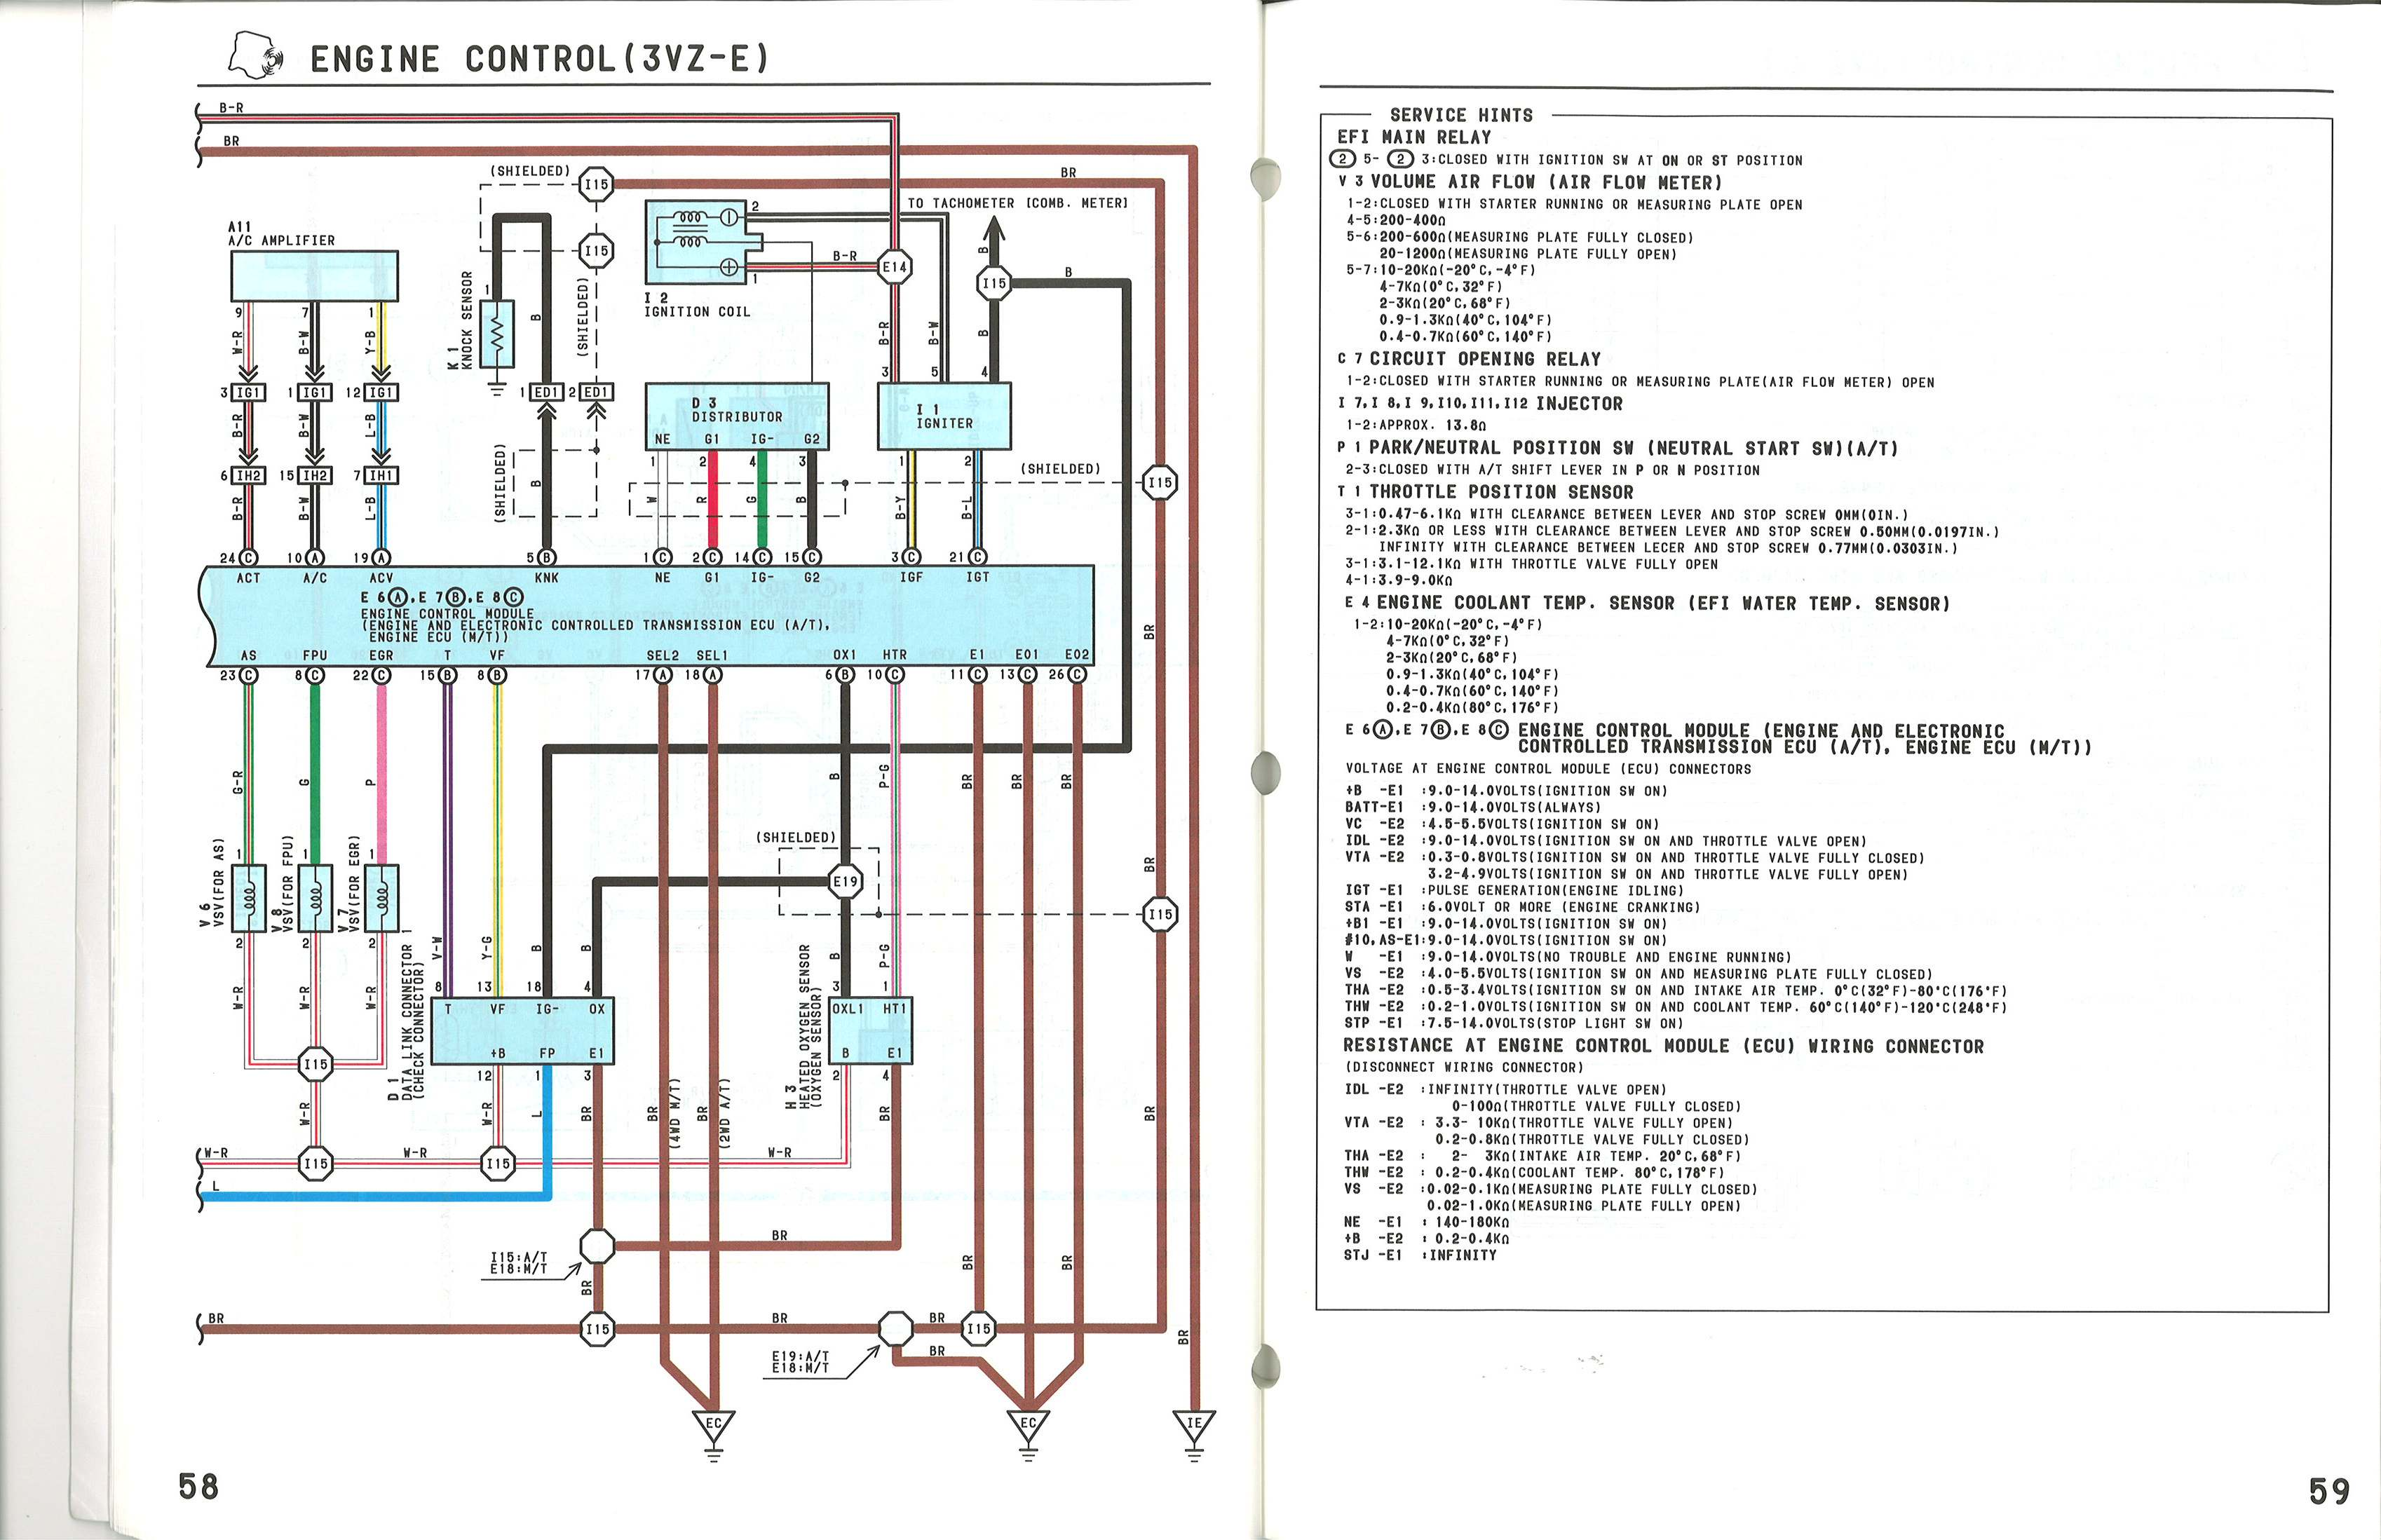 Engine_Control_3vze_3 2005 4runner ecu wiring diagram 1995 toyota 4runner wiring diagram 1995 toyota tacoma wiring diagram at soozxer.org